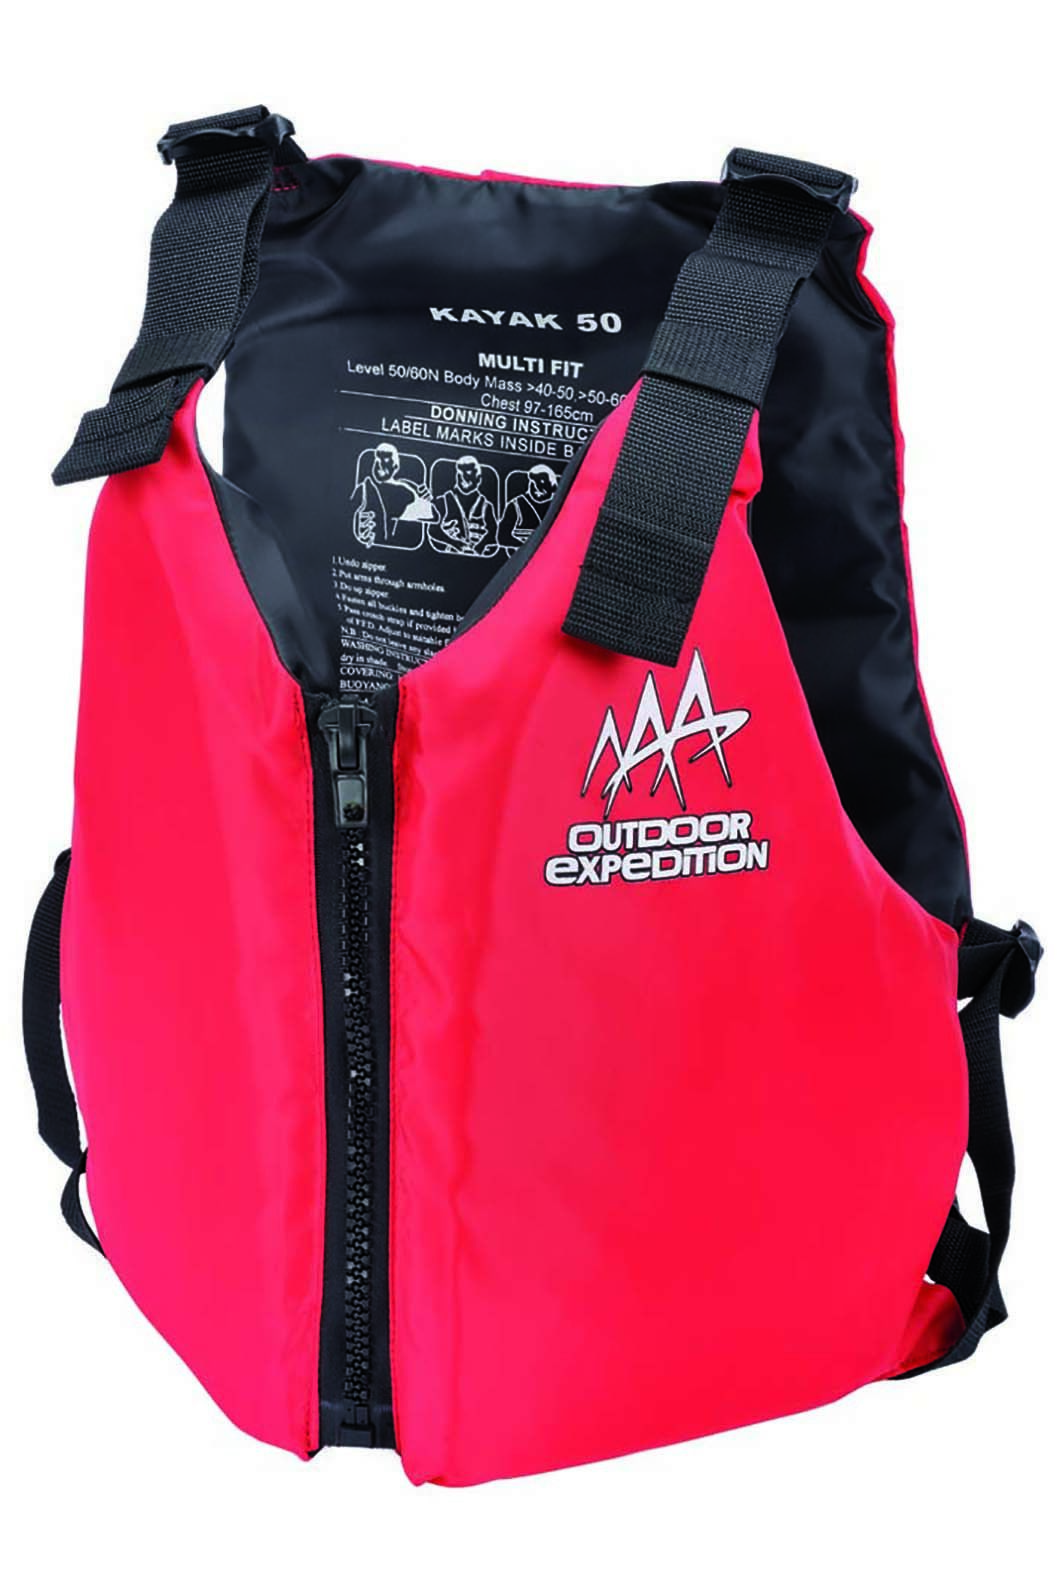 Marlin Australia Multi Fit 40-70kg PFD 50, None, hi-res